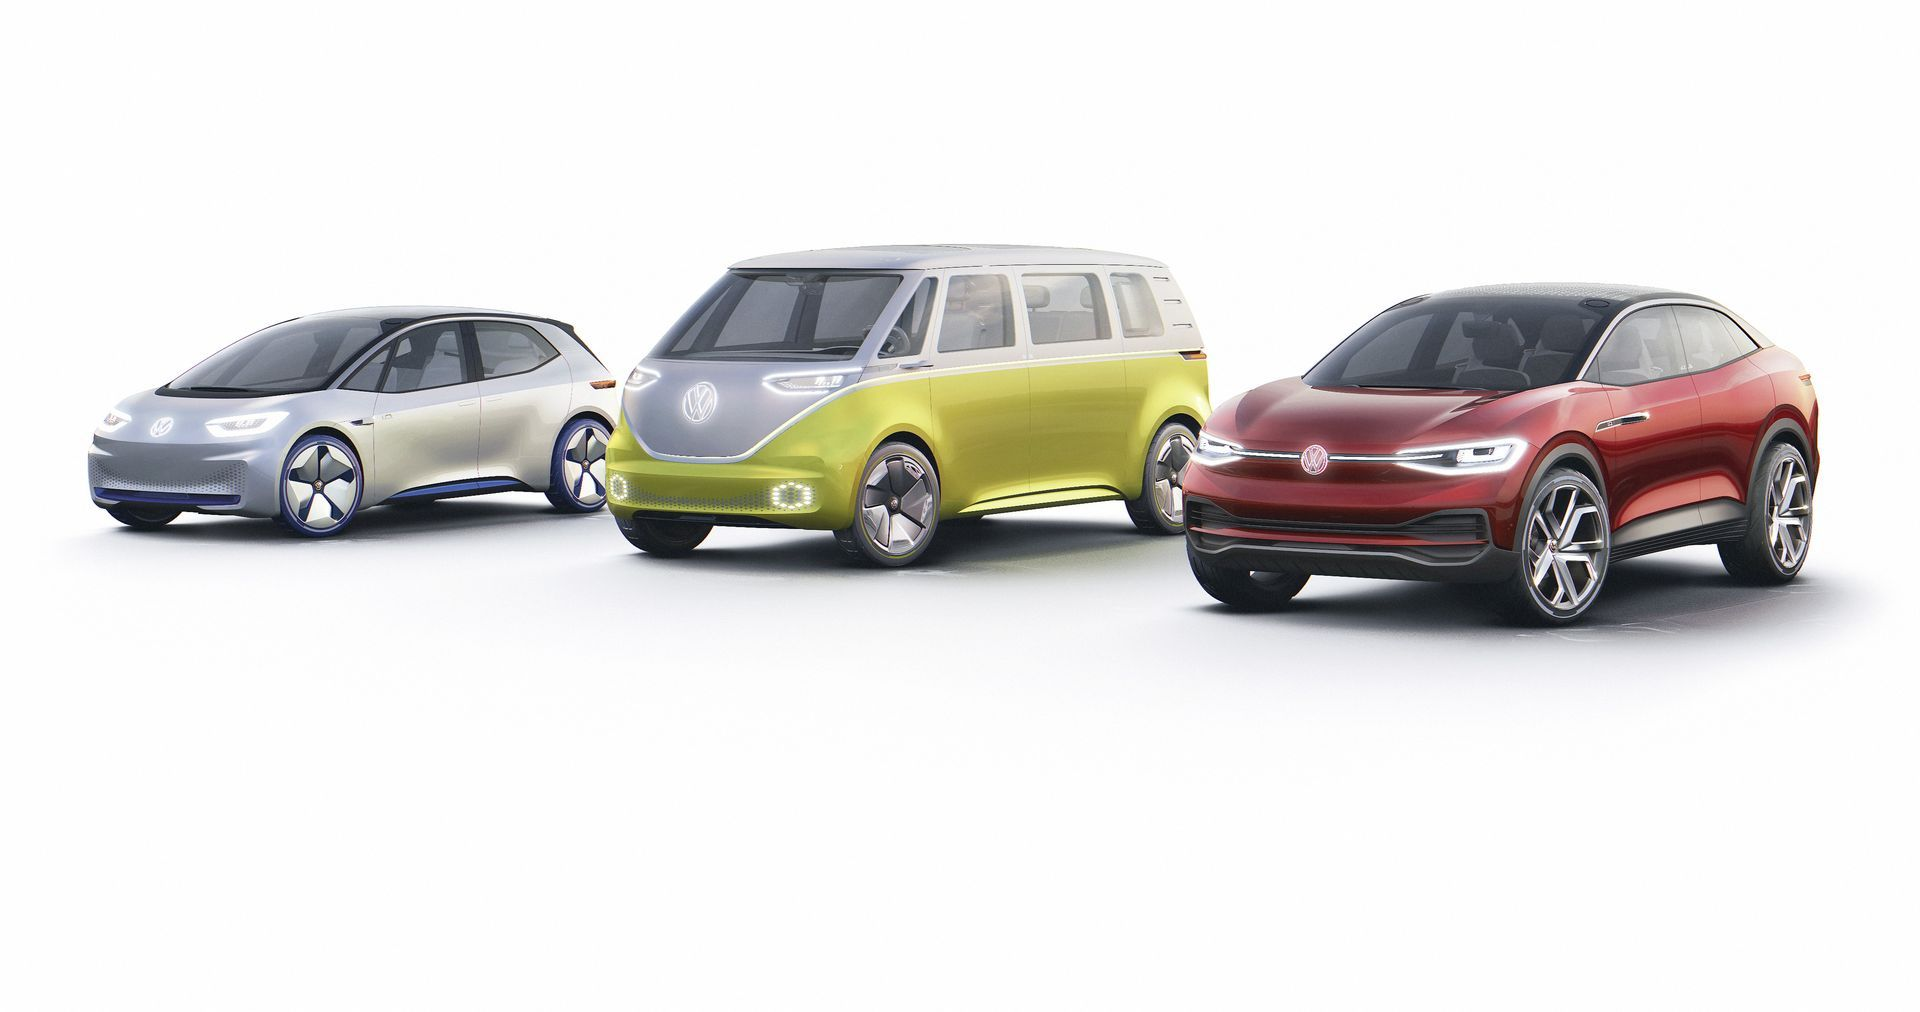 Vw I D 3 Neo Pricing Leak Launch Strategy To Follow Tesla